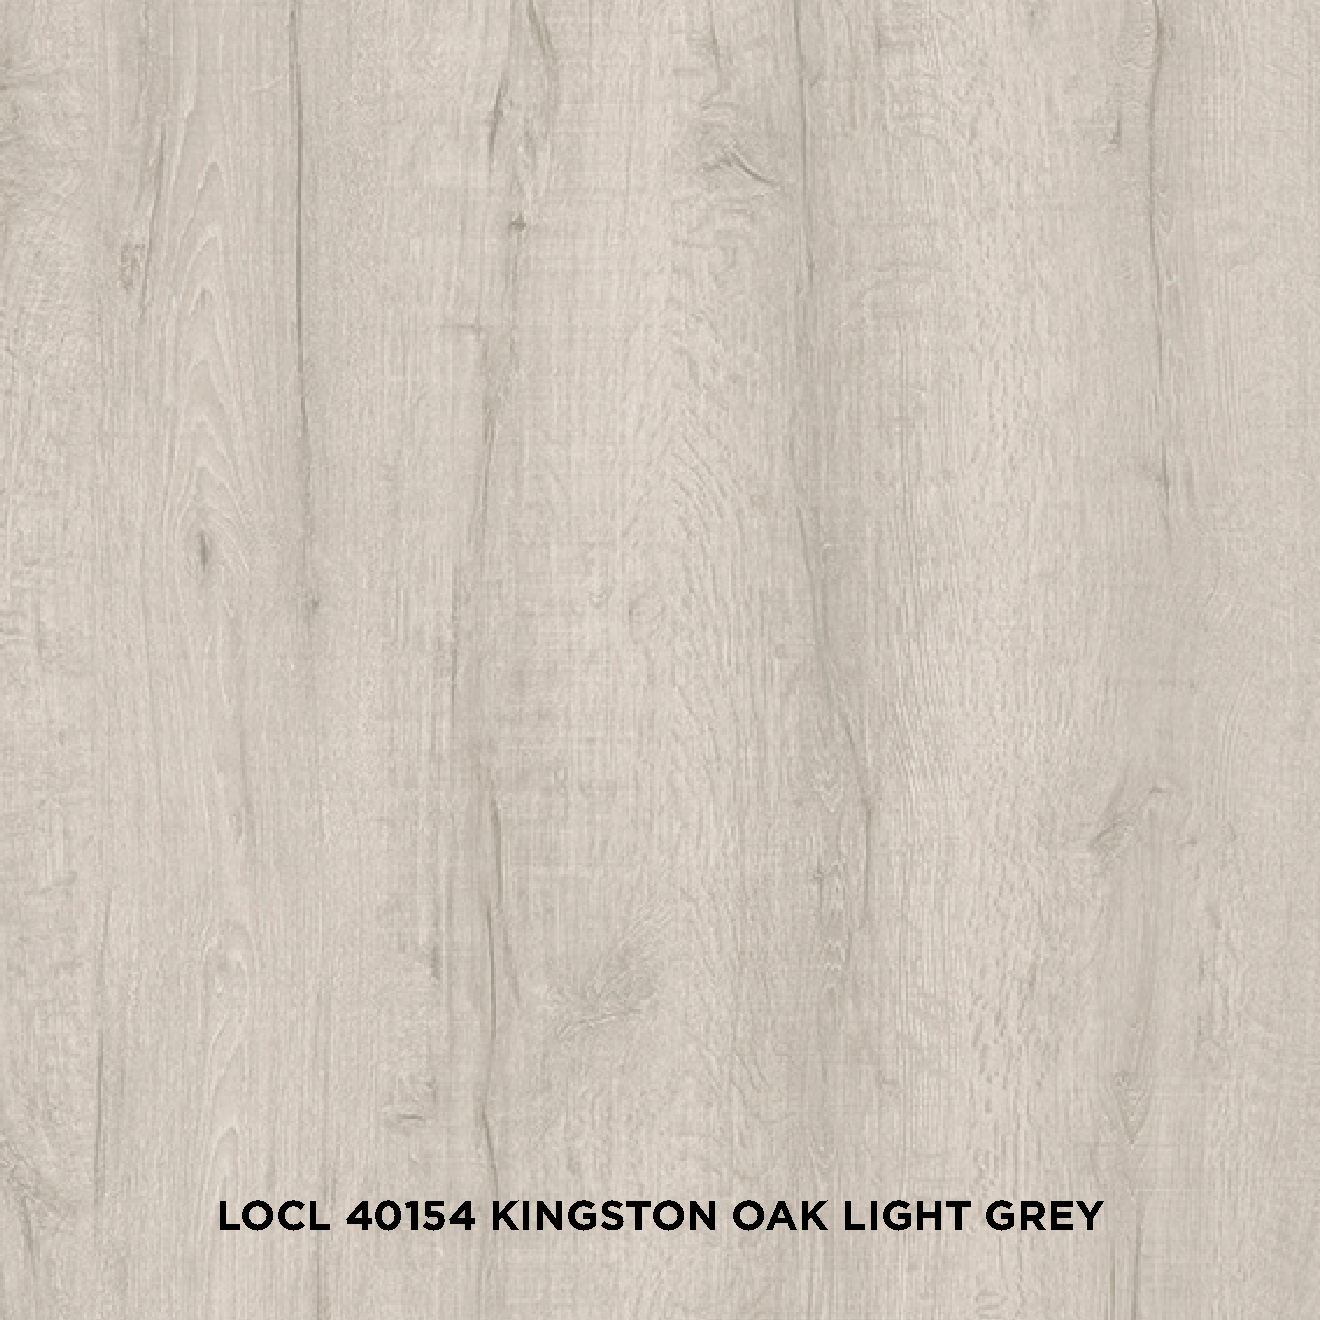 LOCL 40154 KINGSTON OAK LIGHT GREY